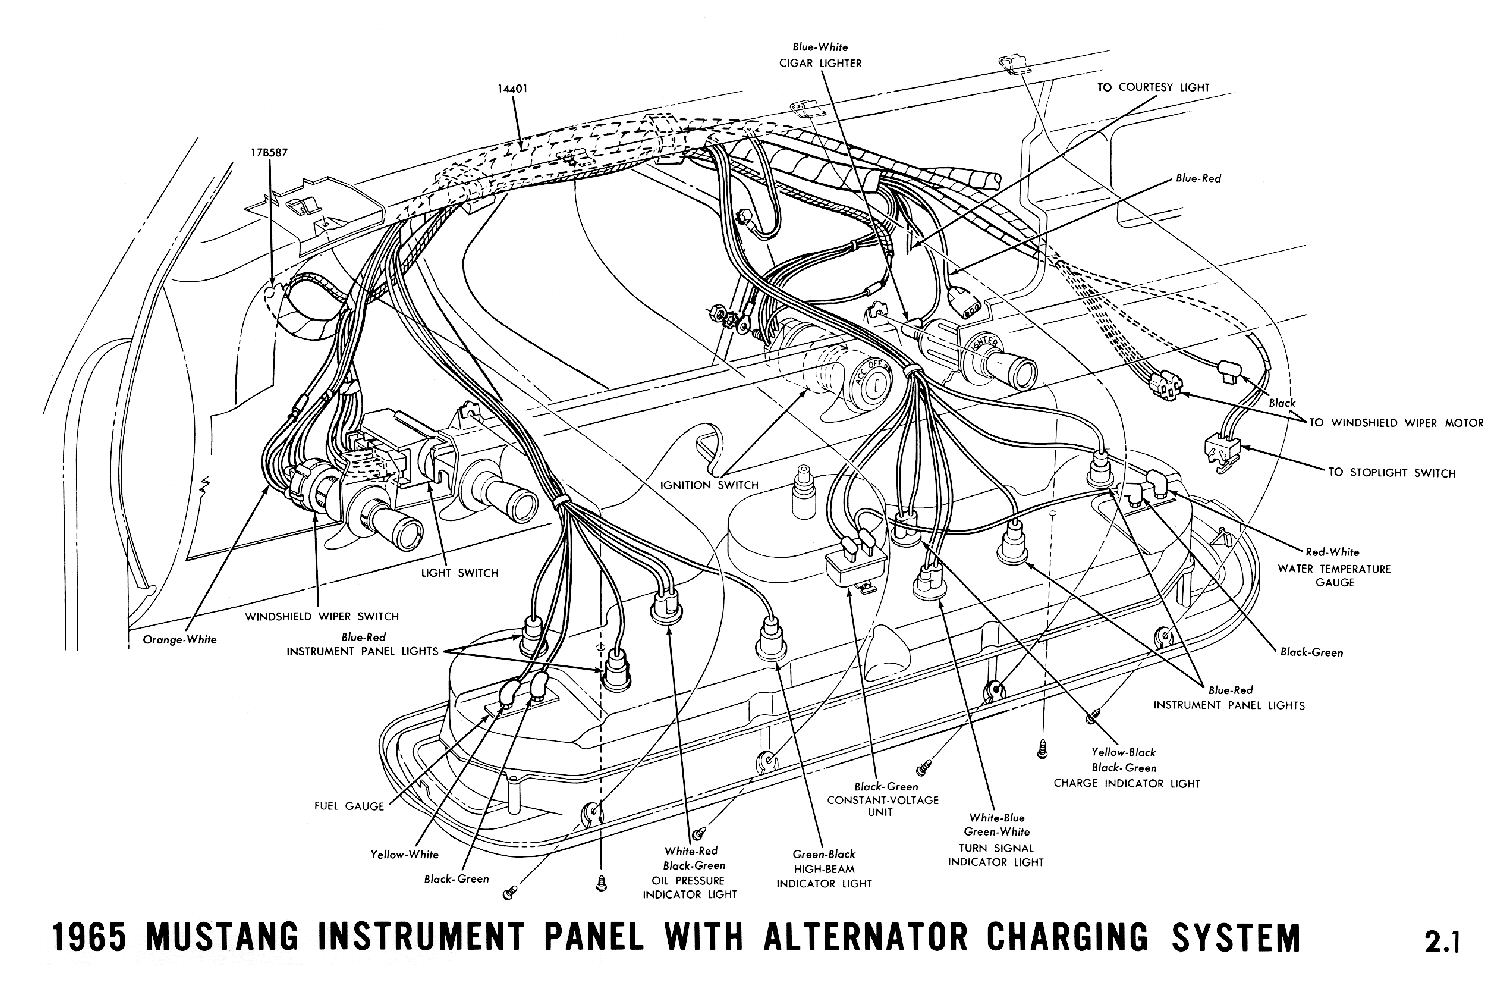 1965a 1965 mustang wiring diagrams average joe restoration 68 mustang headlight wiring diagram at edmiracle.co